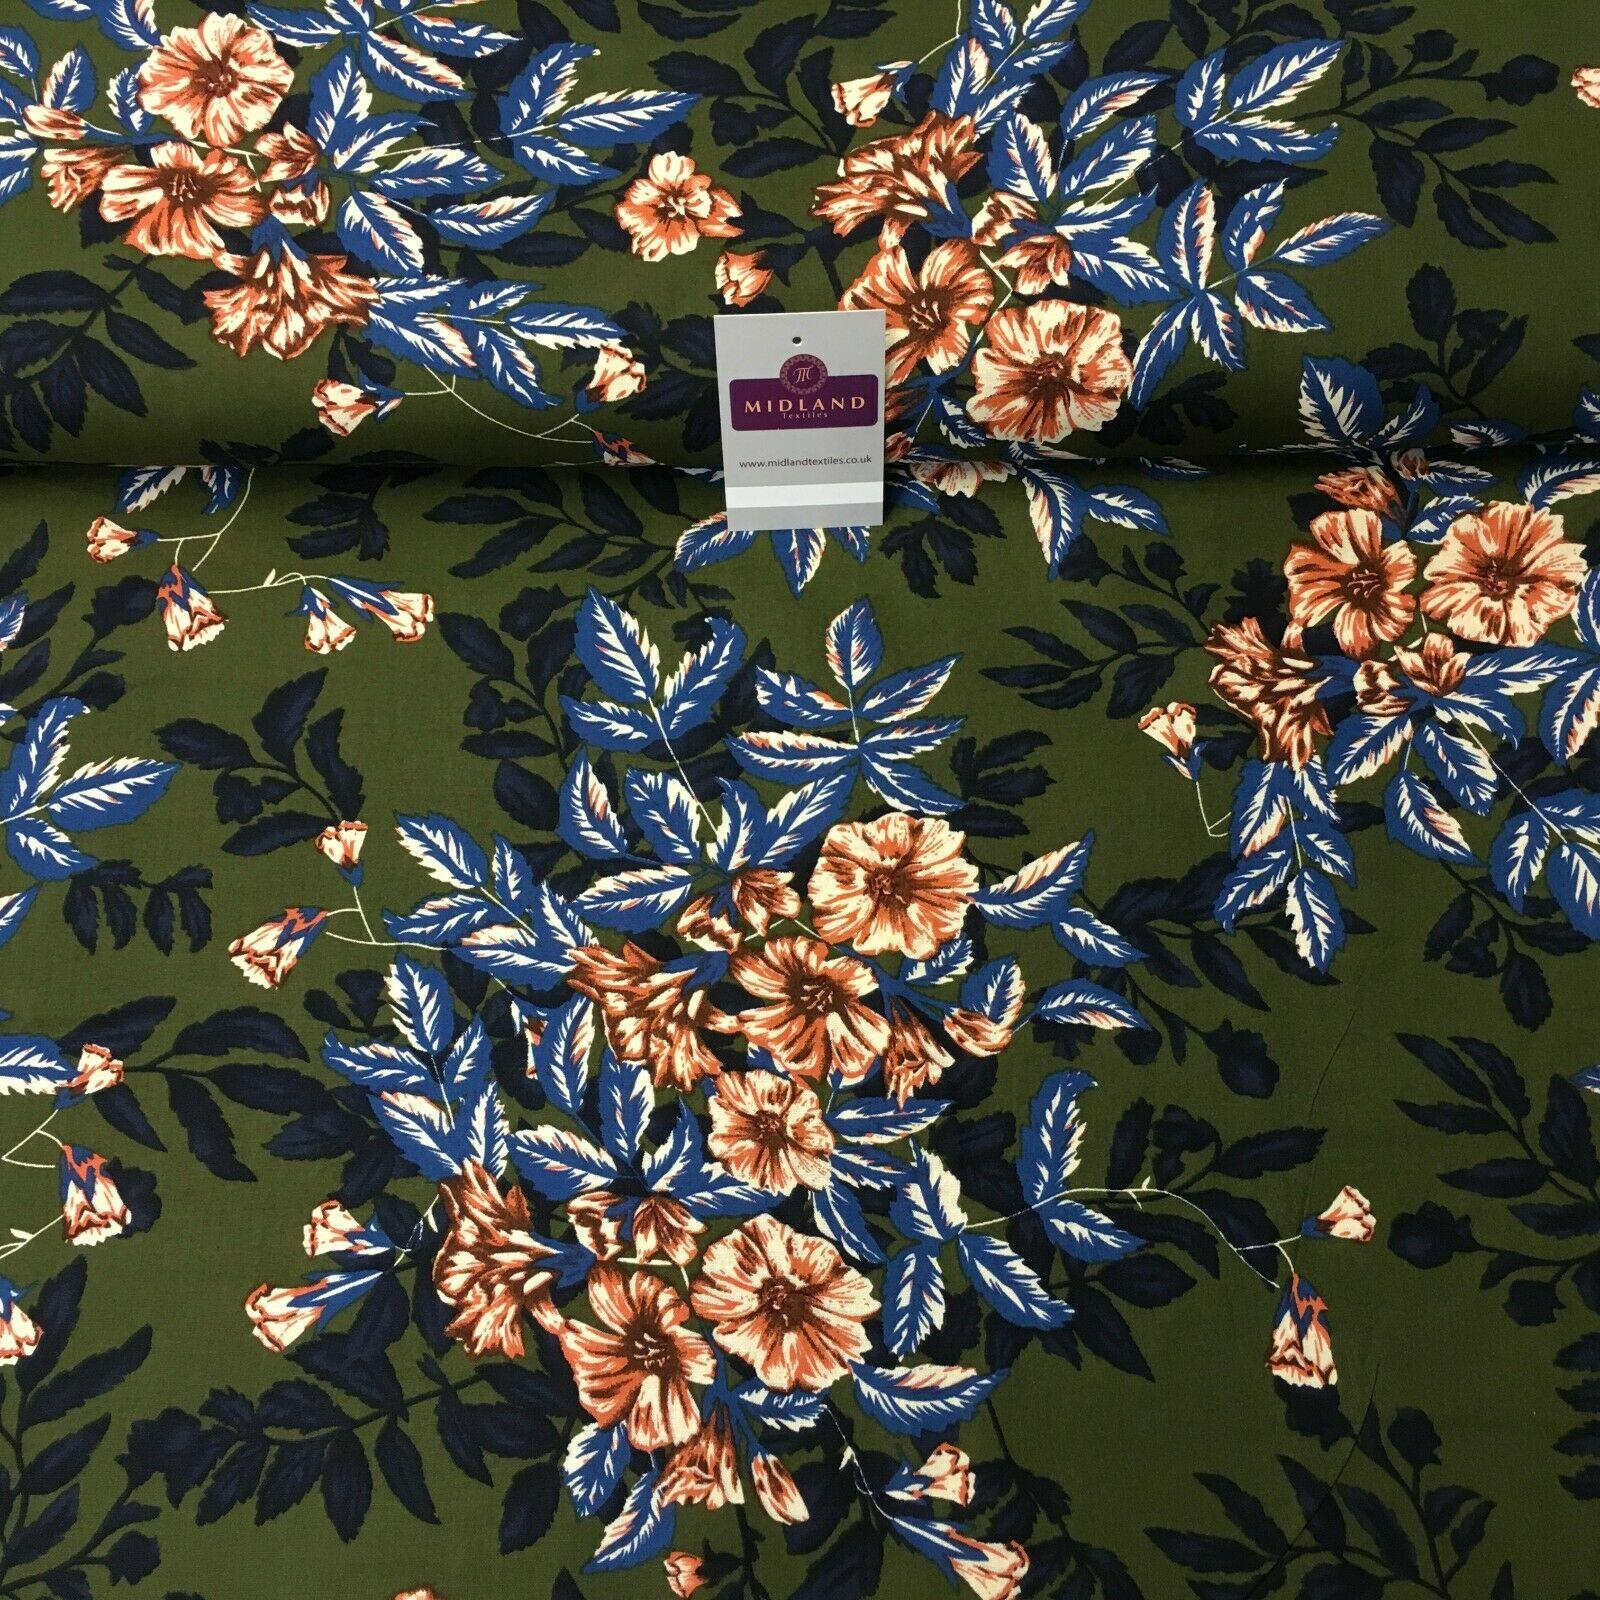 Olive Blue Floral Printed Cotton Linen Dress Fabric 150cm Wide MK1086-7